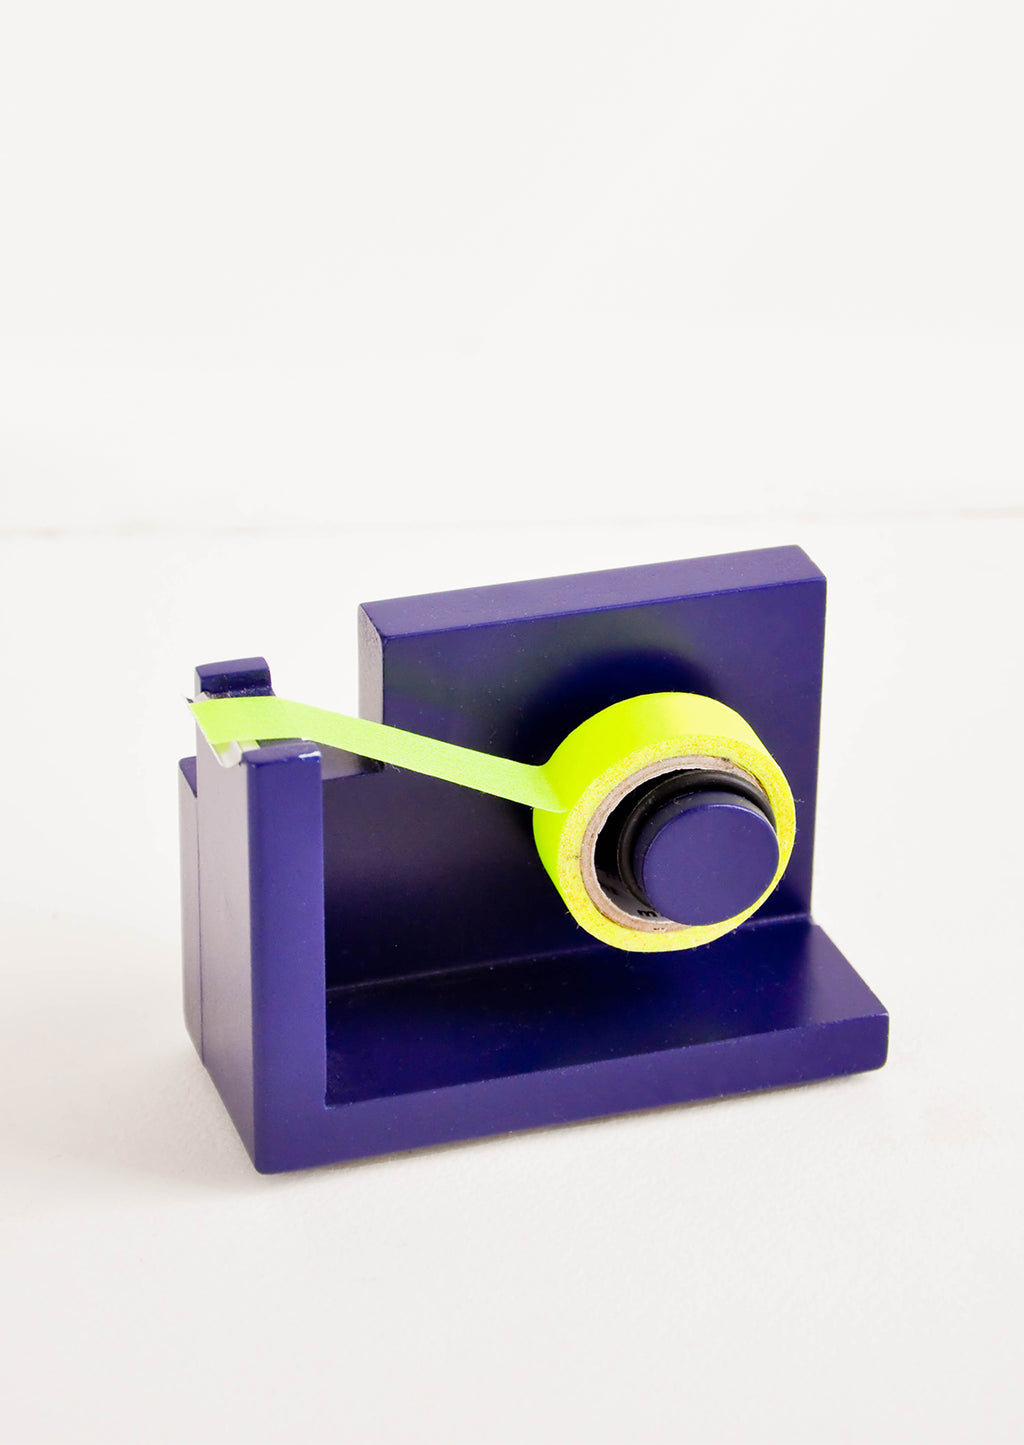 Navy: Navy blue wooden tape dispenser with yellow tape.